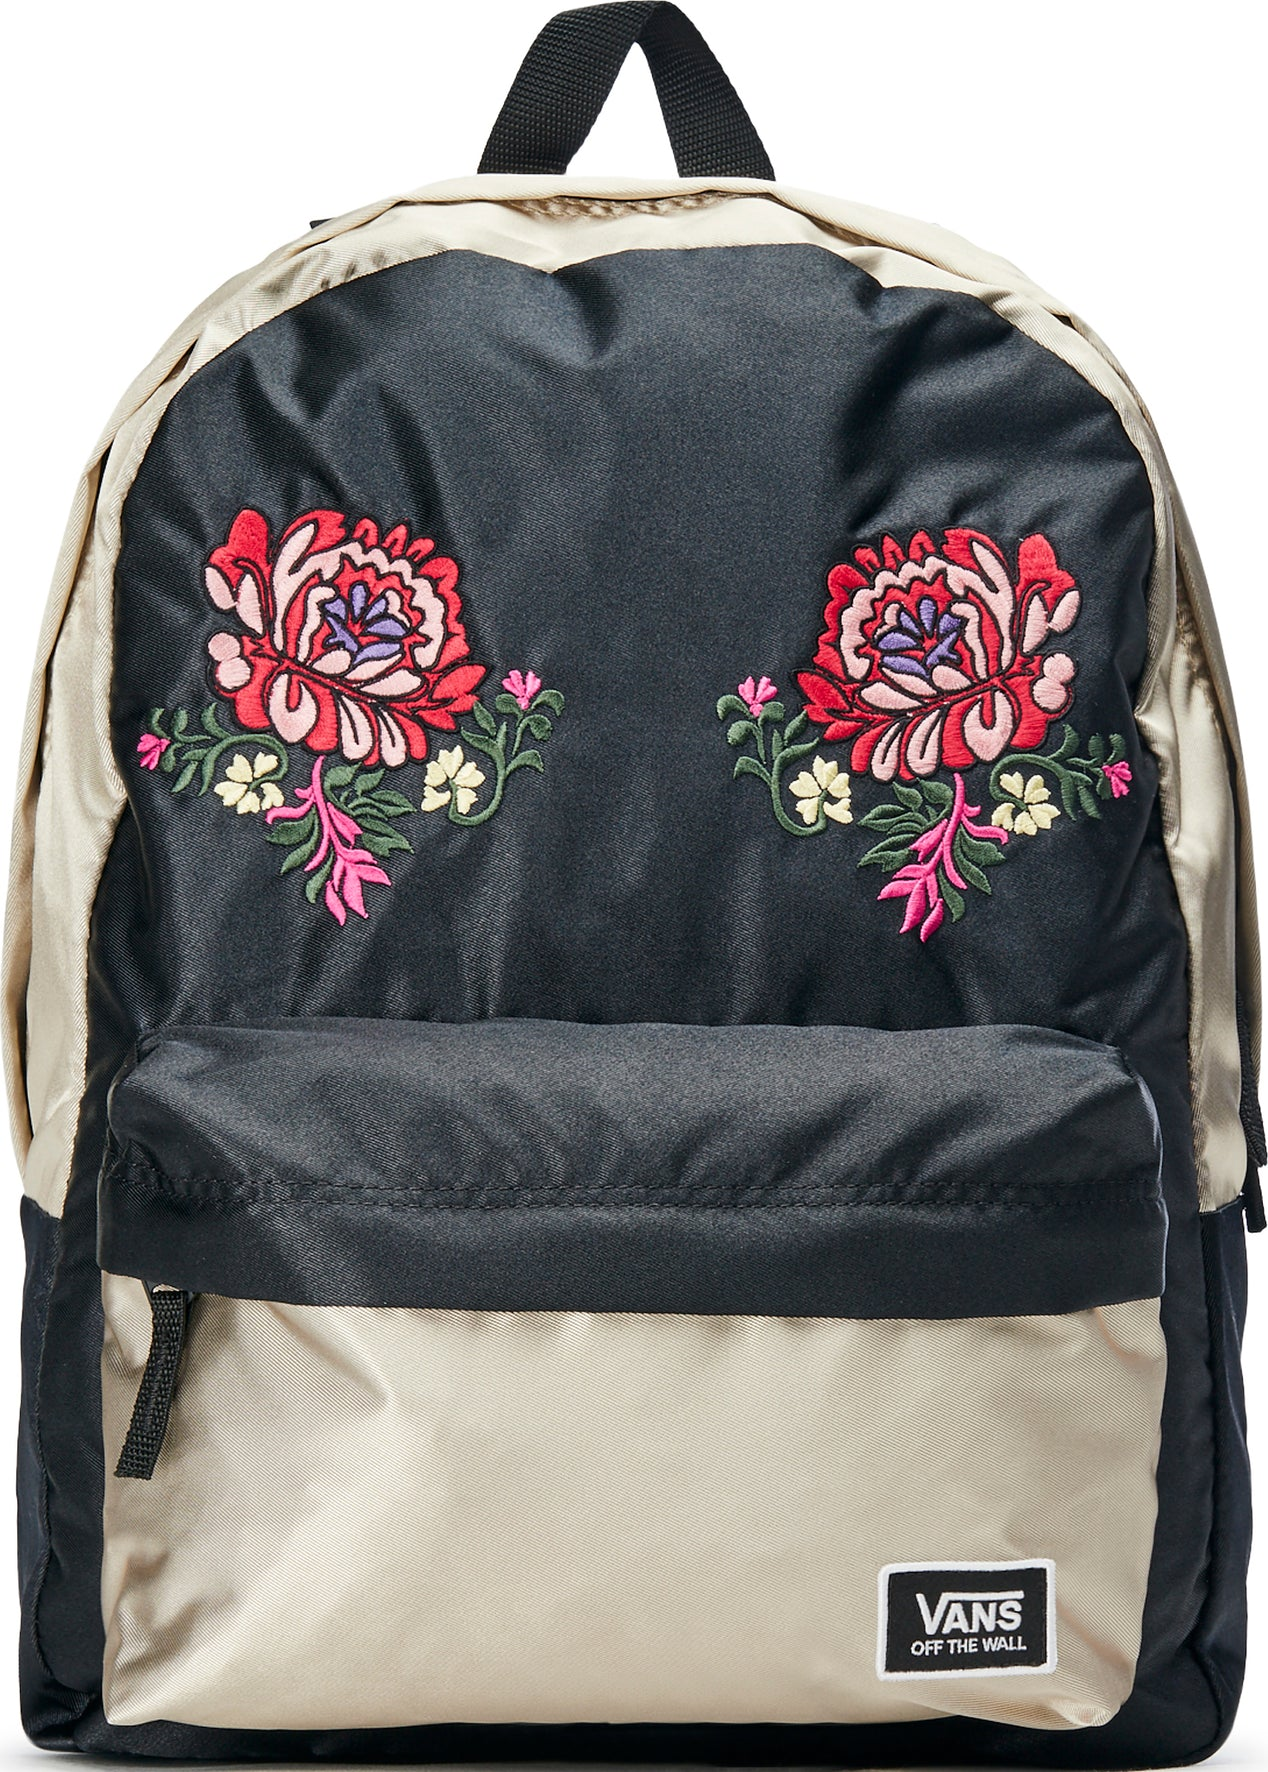 Vans Women s Deana Festival Embroidery Backpack  cabc194b3ce5f